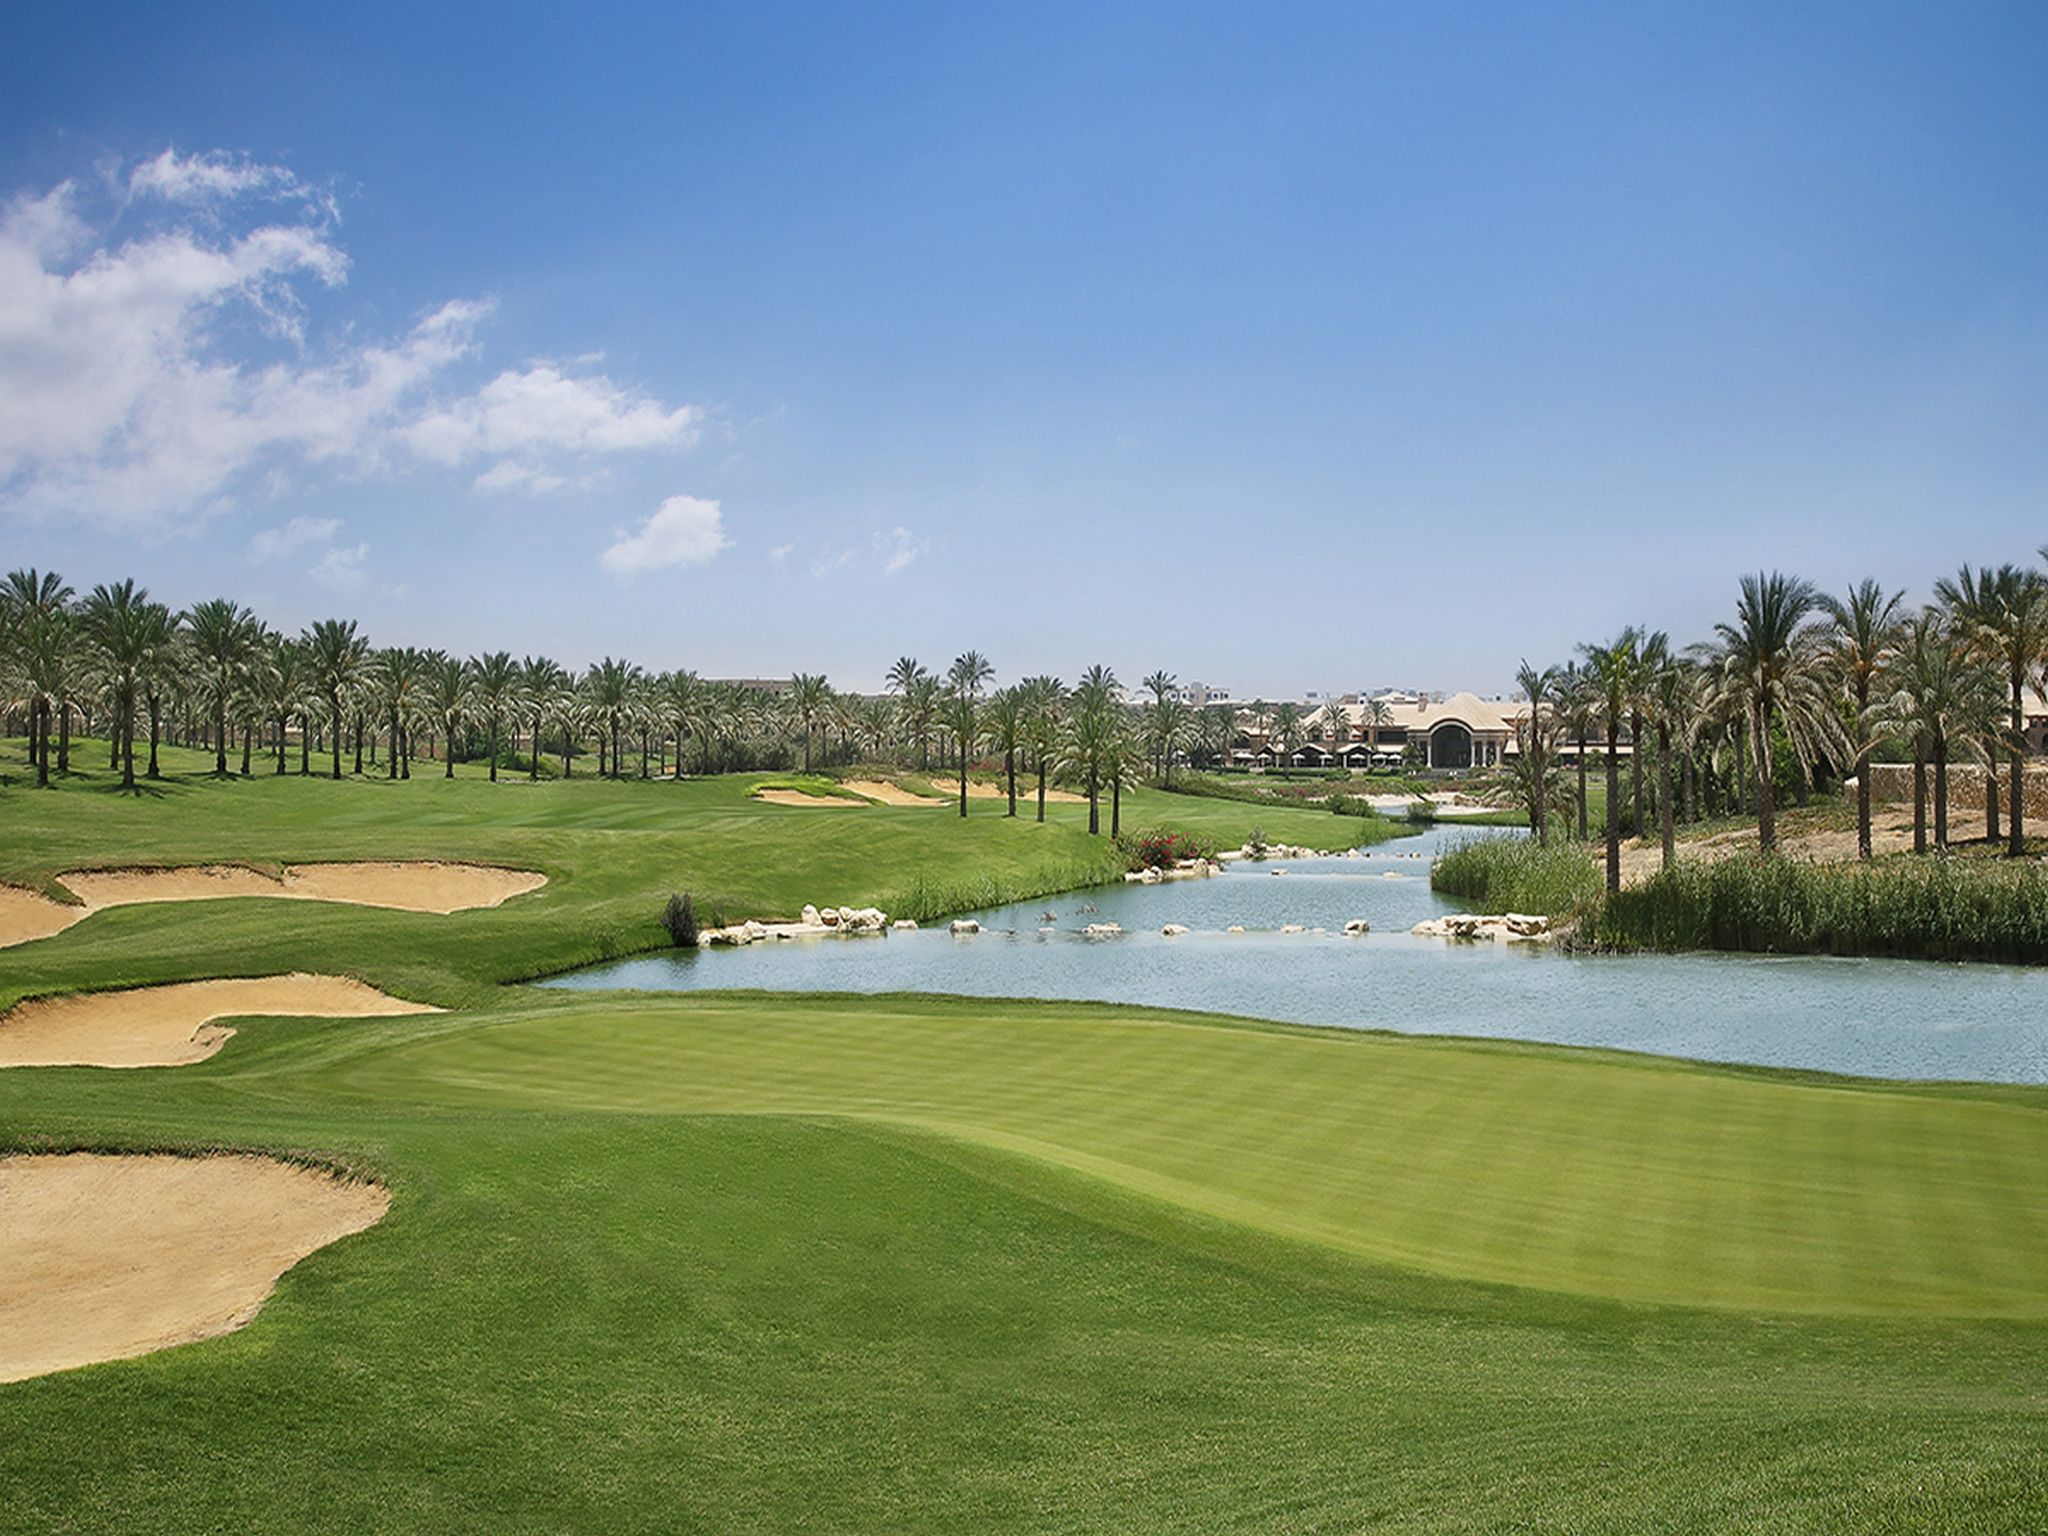 Cairo Golf Club | An Amazing Golf Experience